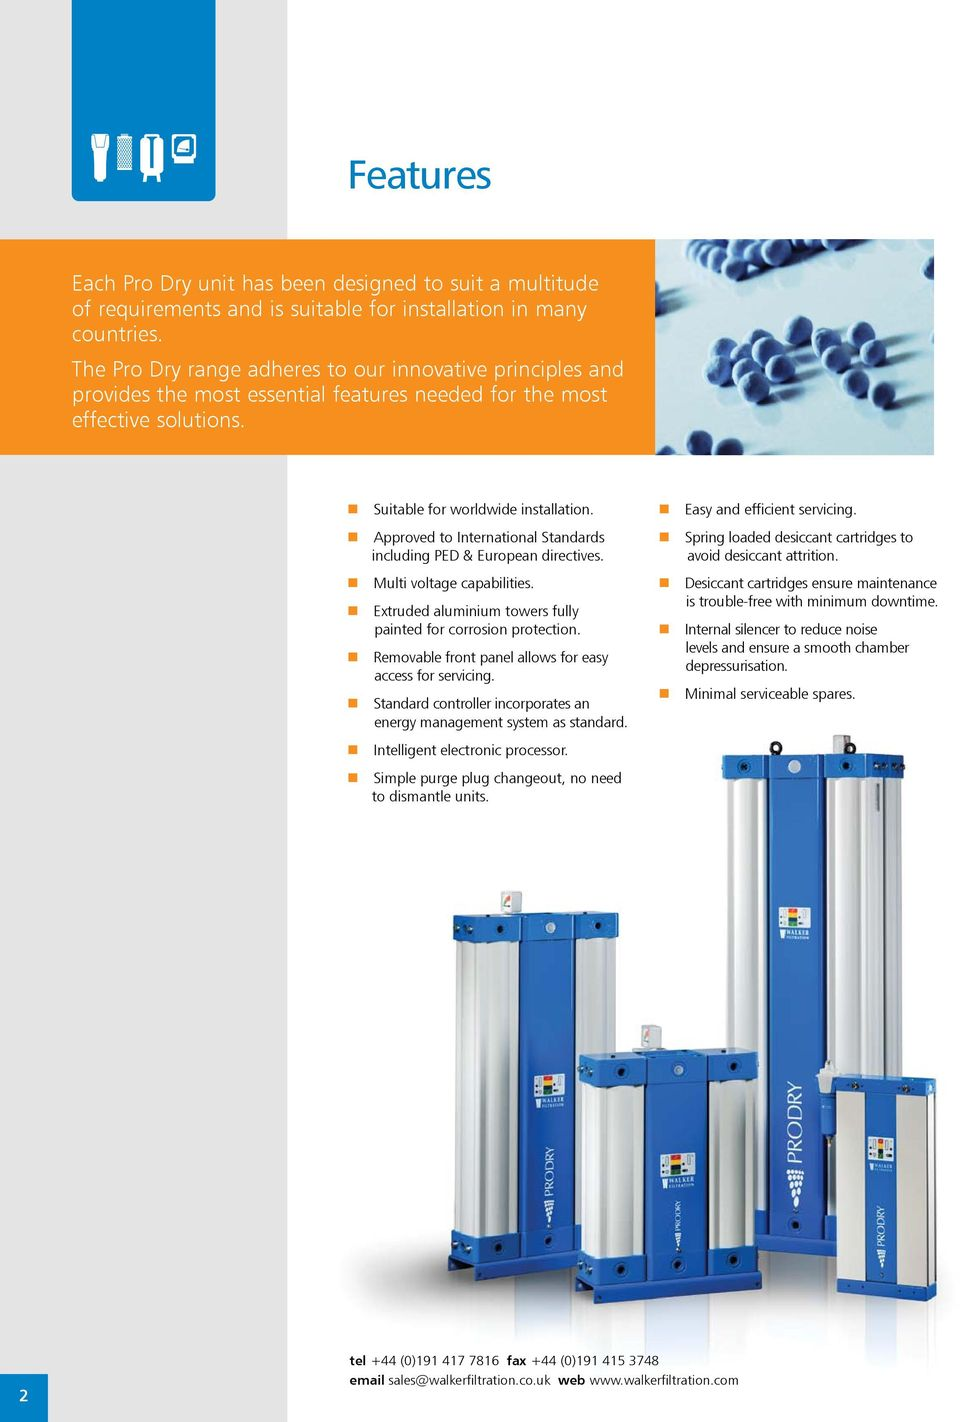 Approved to International Standards including PED & European directives. Multi voltage capabilities. Extruded aluminium towers fully painted for corrosion protection.